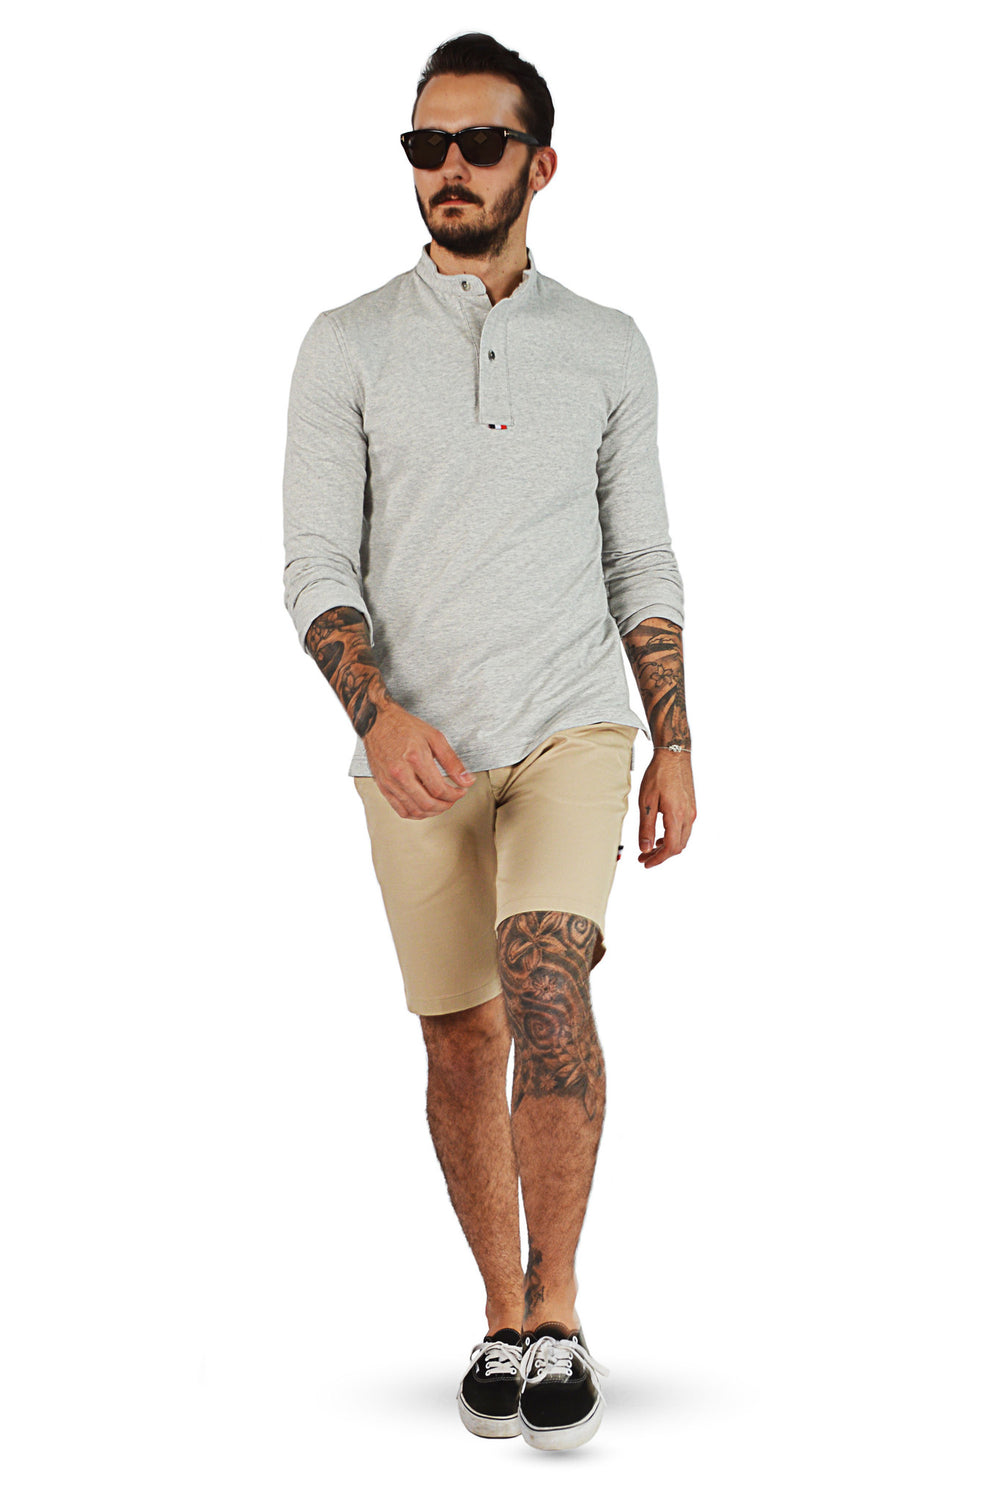 French terry tailored henley shirt with camel tailored shorts